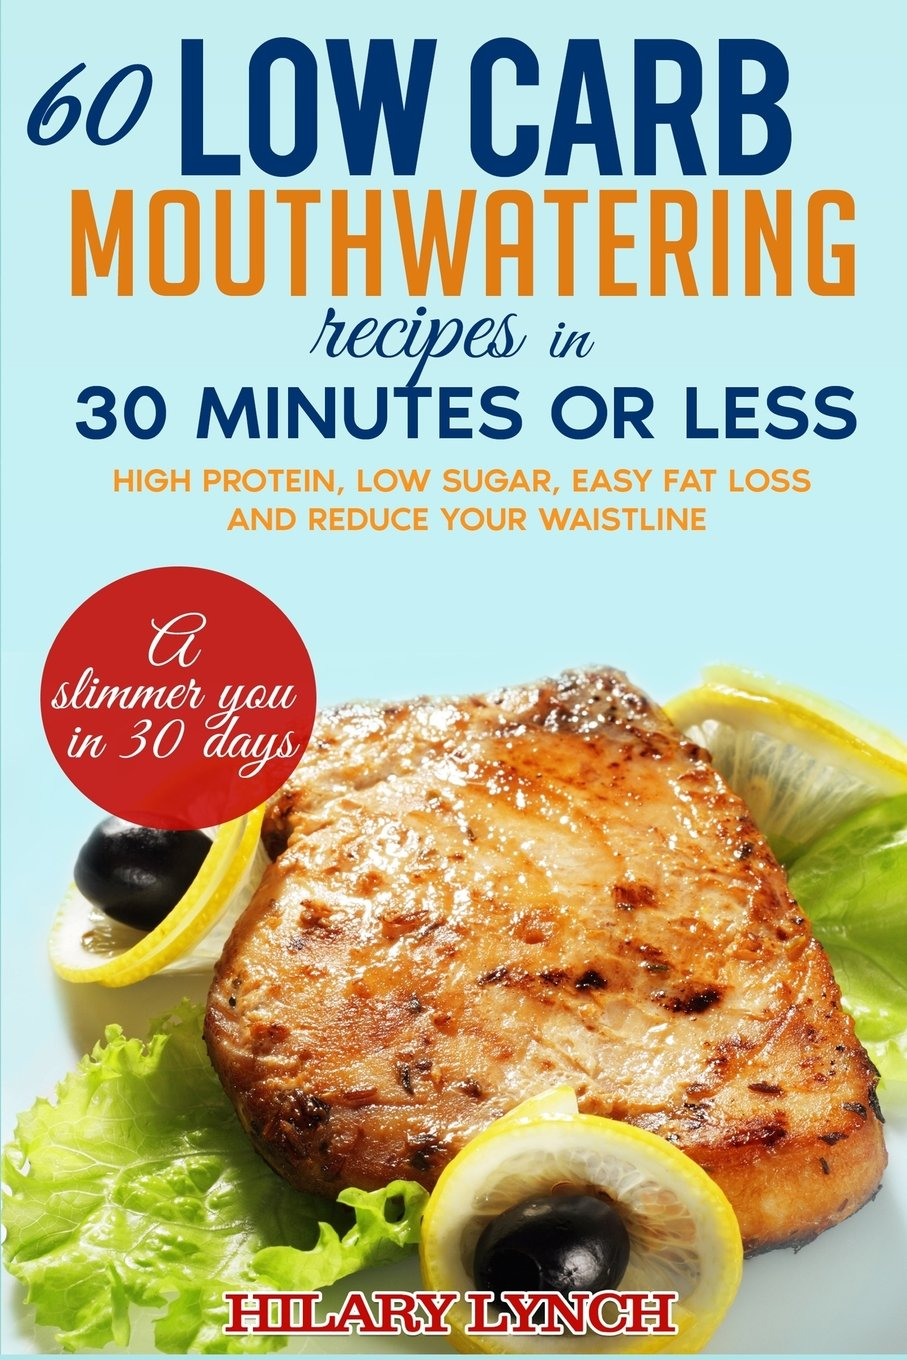 60 Low Carb Mouthwatering Recipes in 30 minutes or less: High Protein, low sugar, easy fat loss and reduce your waistlne ebook